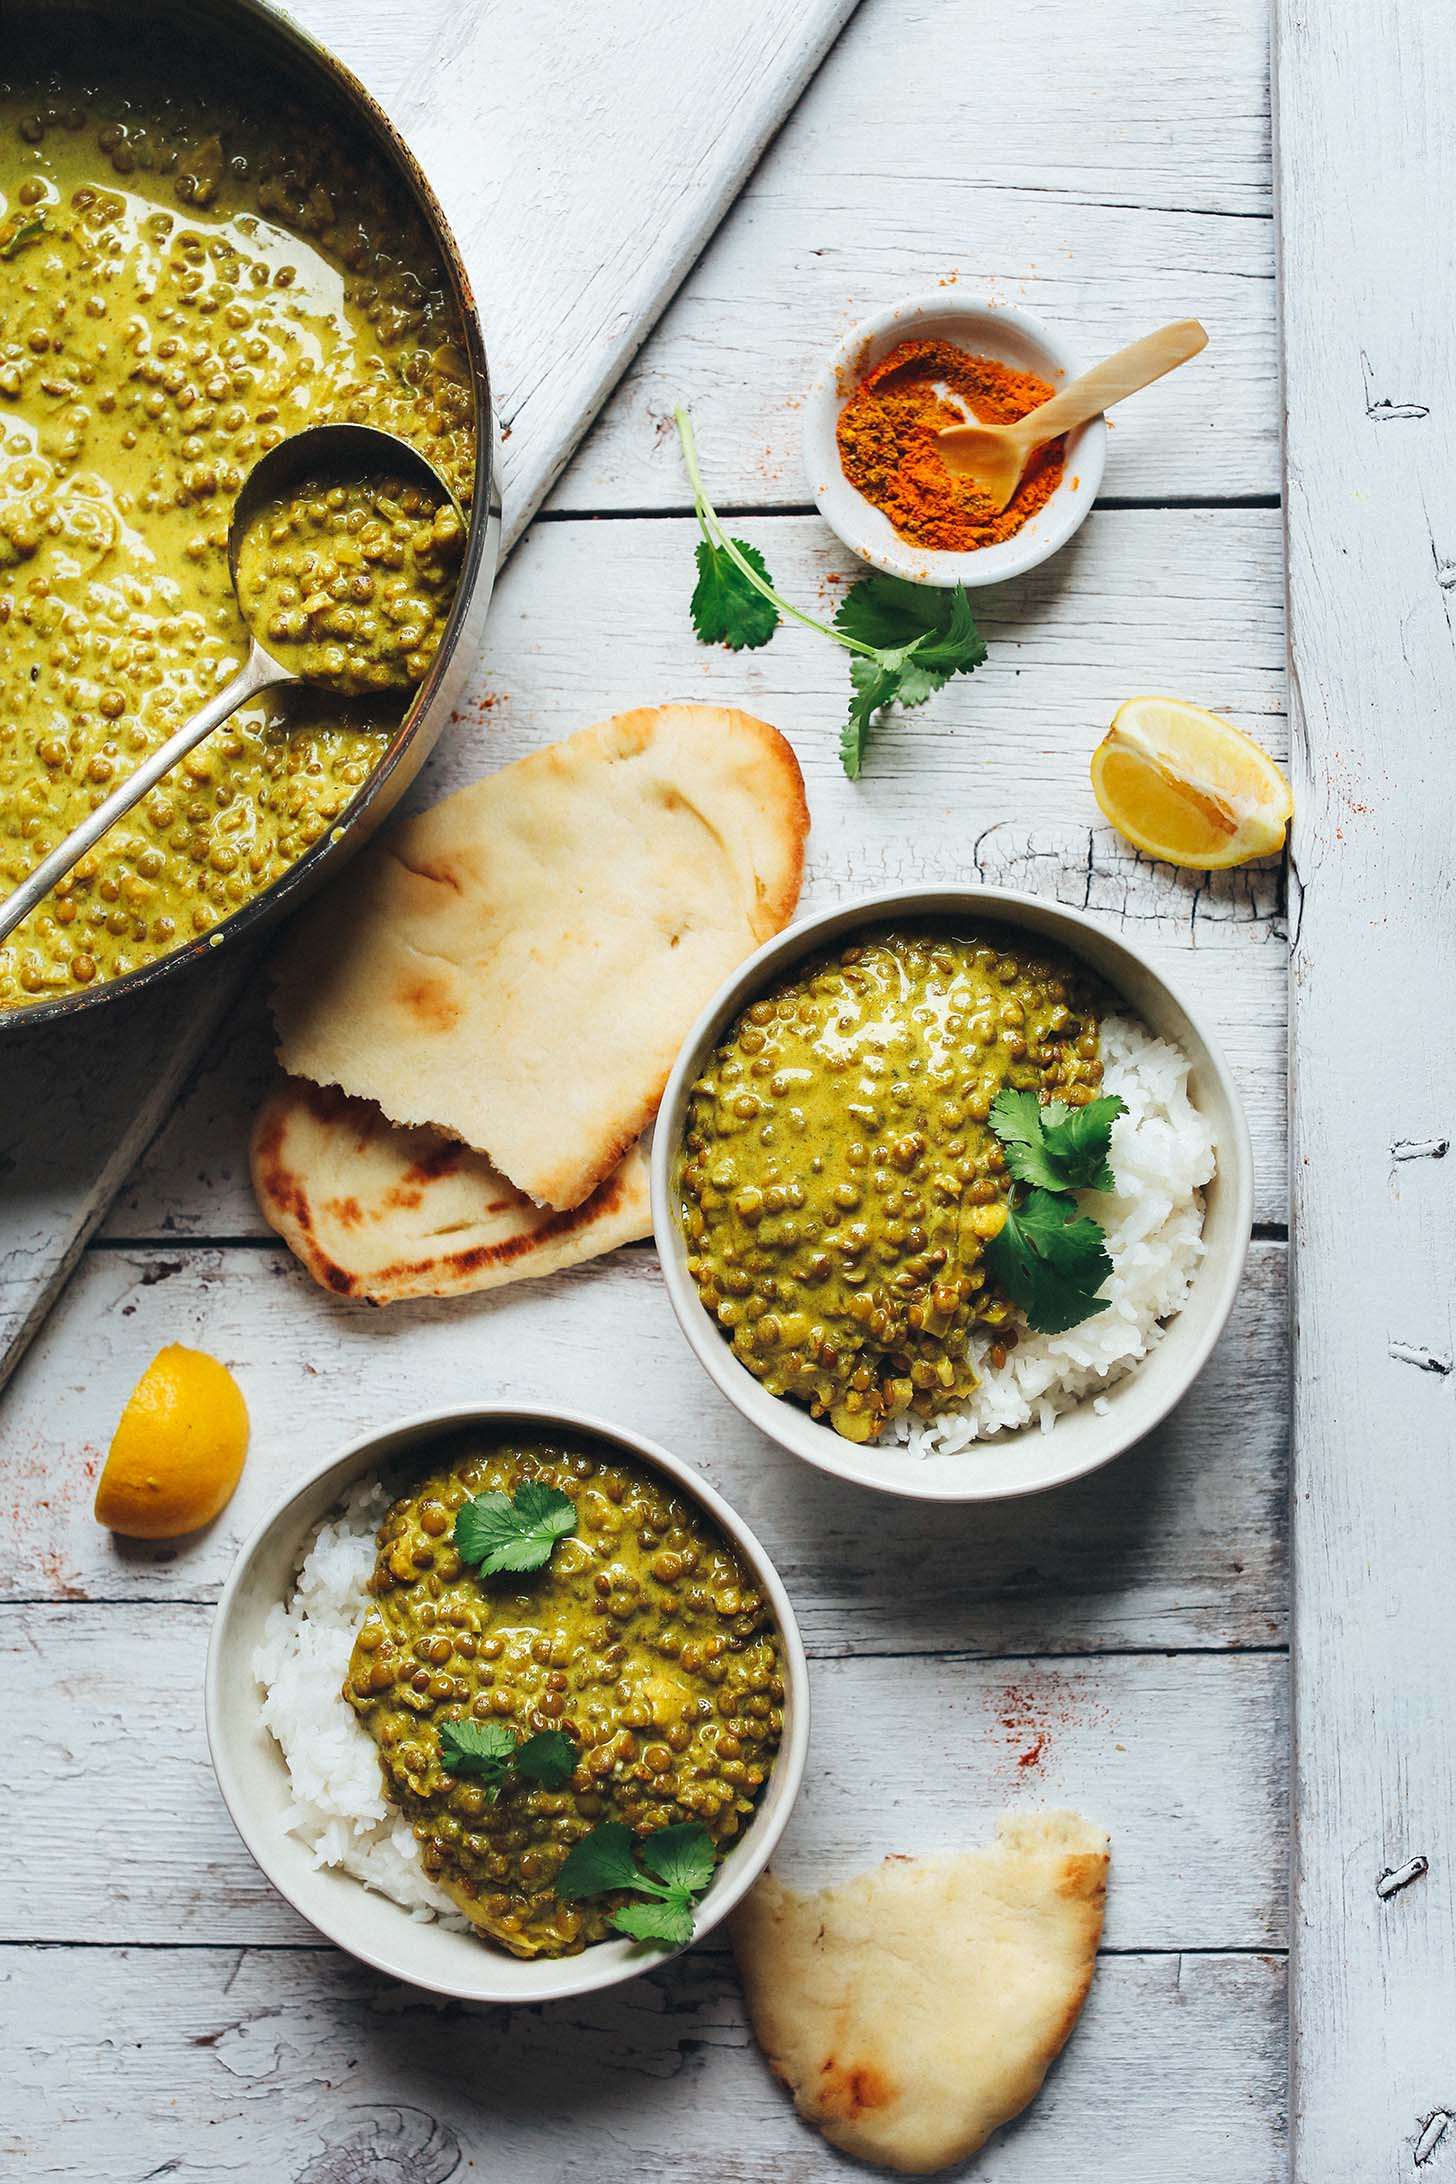 A pan and bowls of Vegan Lentil Dal alongside homemade Naan